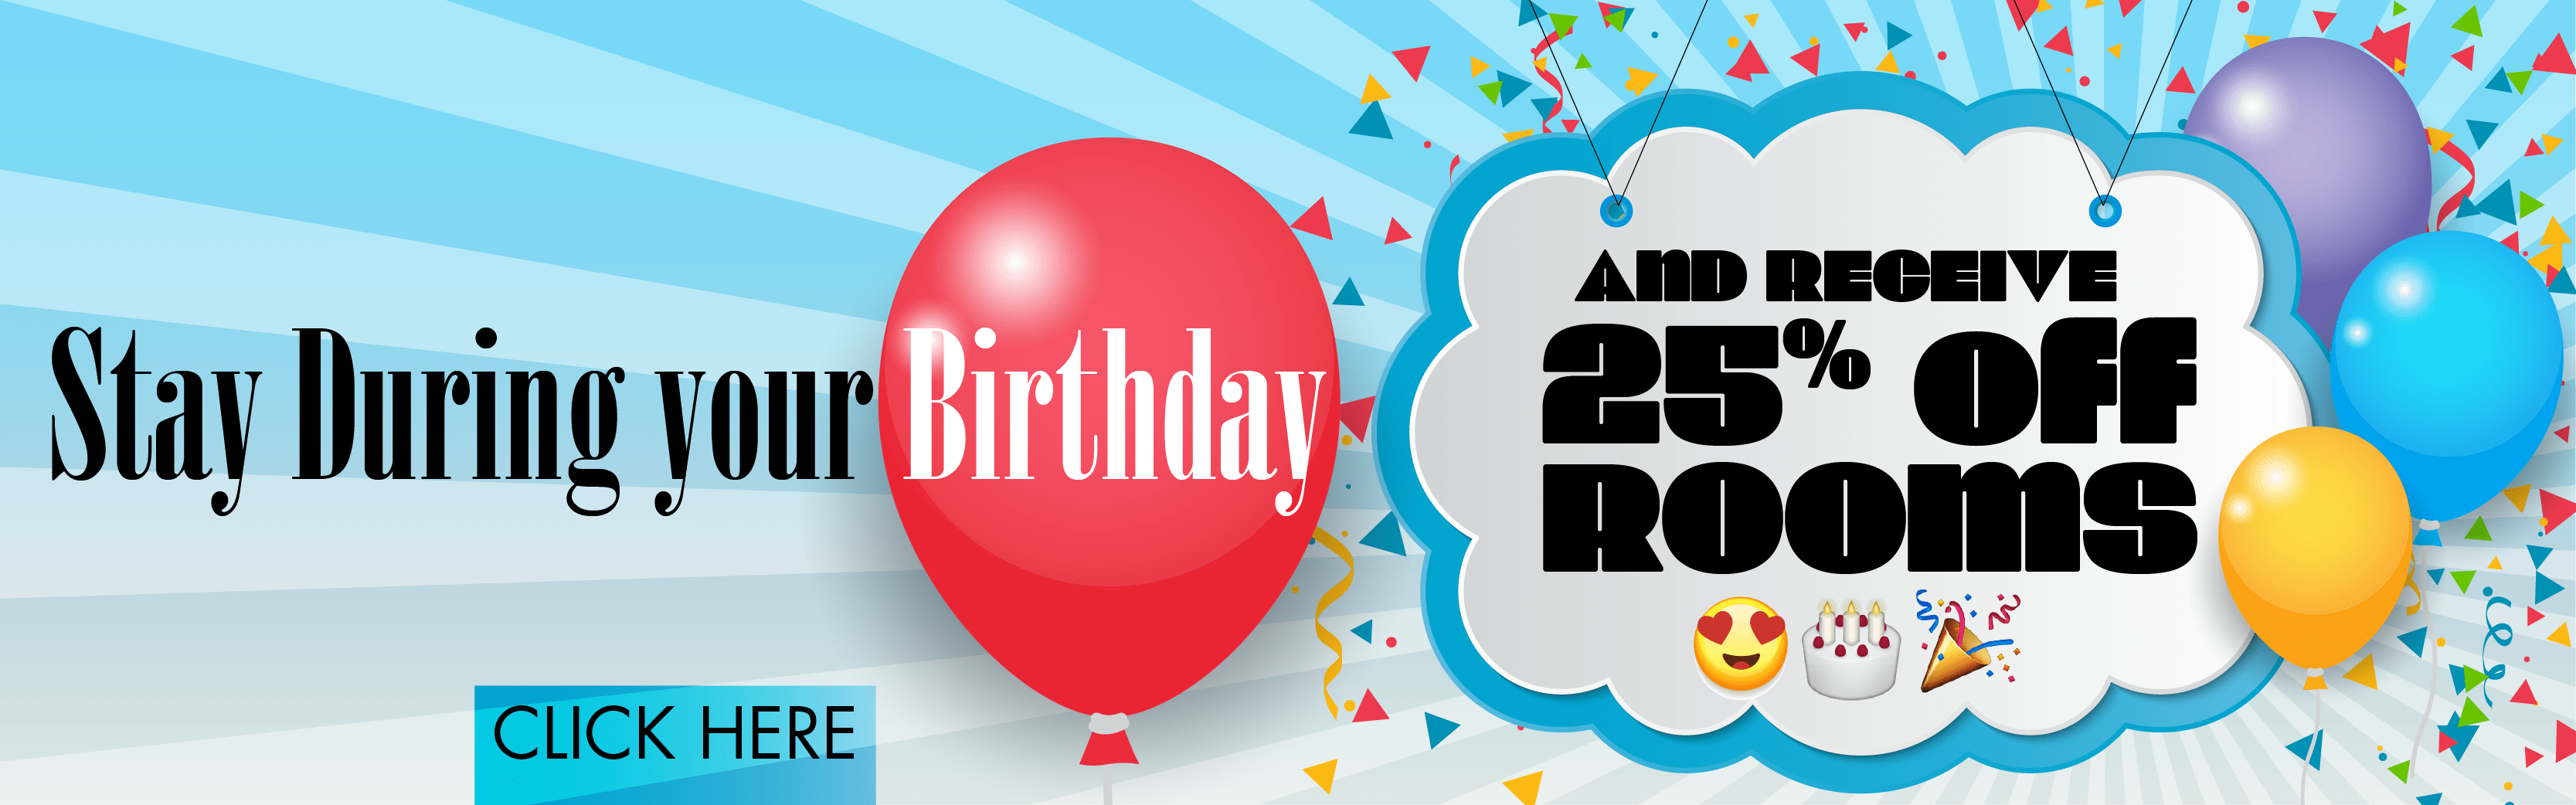 25% off rooms for your birthday